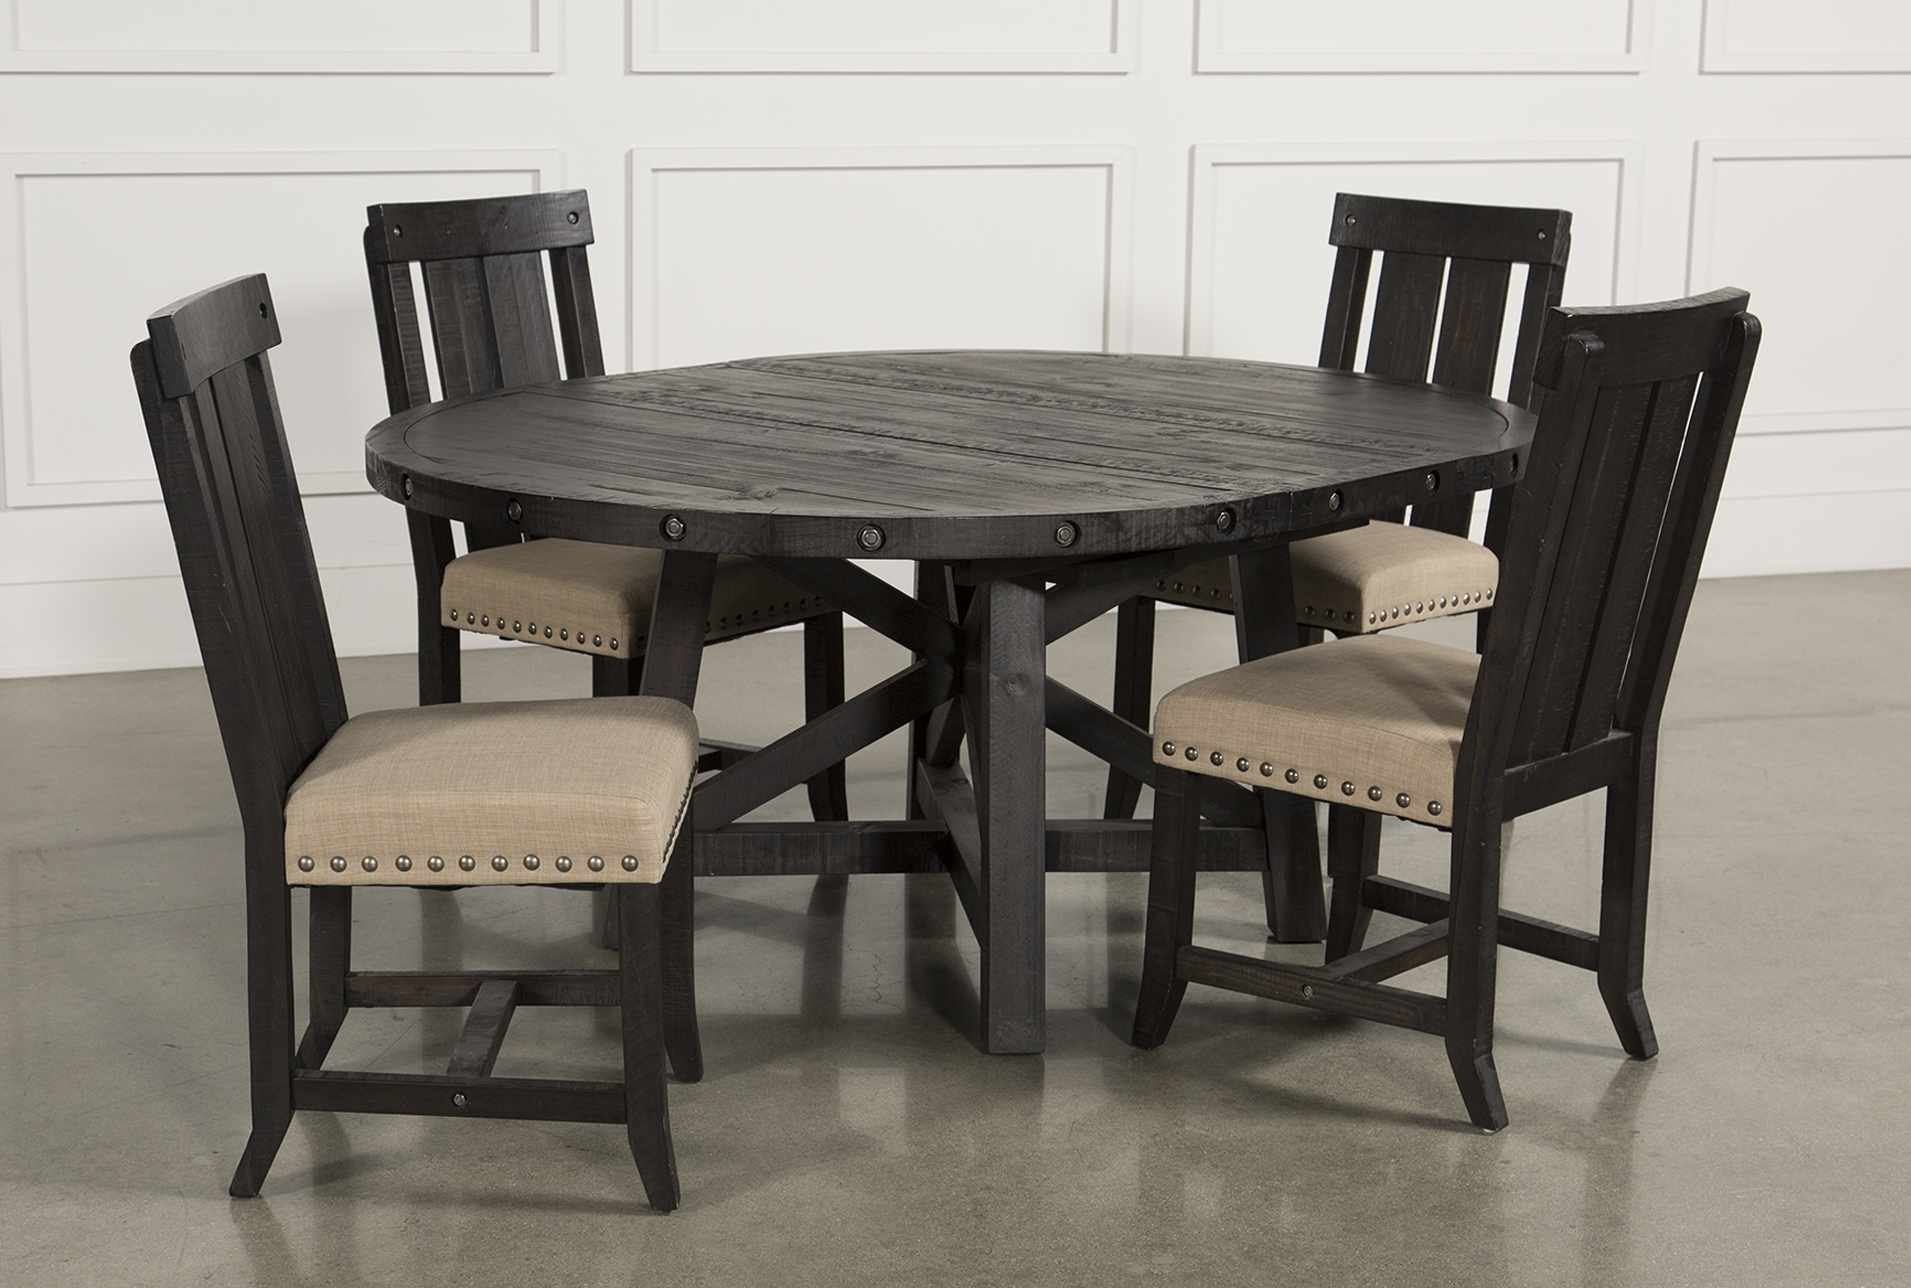 Jaxon 5 Piece Extension Round Dining Set W/wood Chairs | Products For Recent Jaxon 5 Piece Extension Round Dining Sets With Wood Chairs (Image 9 of 20)